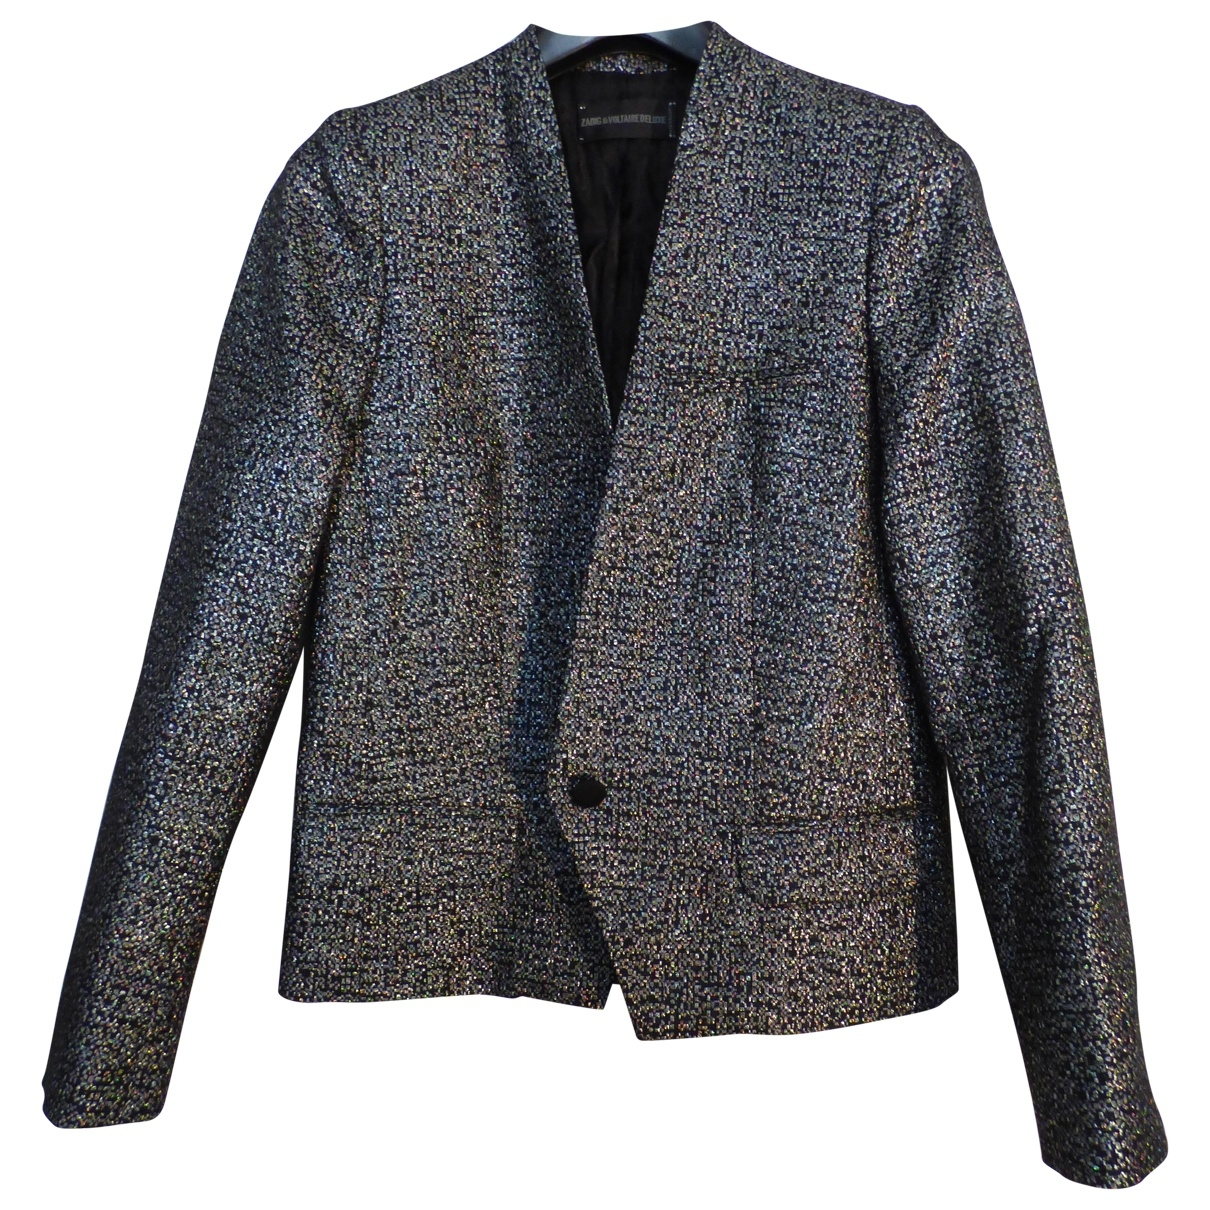 Zadig & Voltaire \N Silver Glitter jacket for Women 36 FR